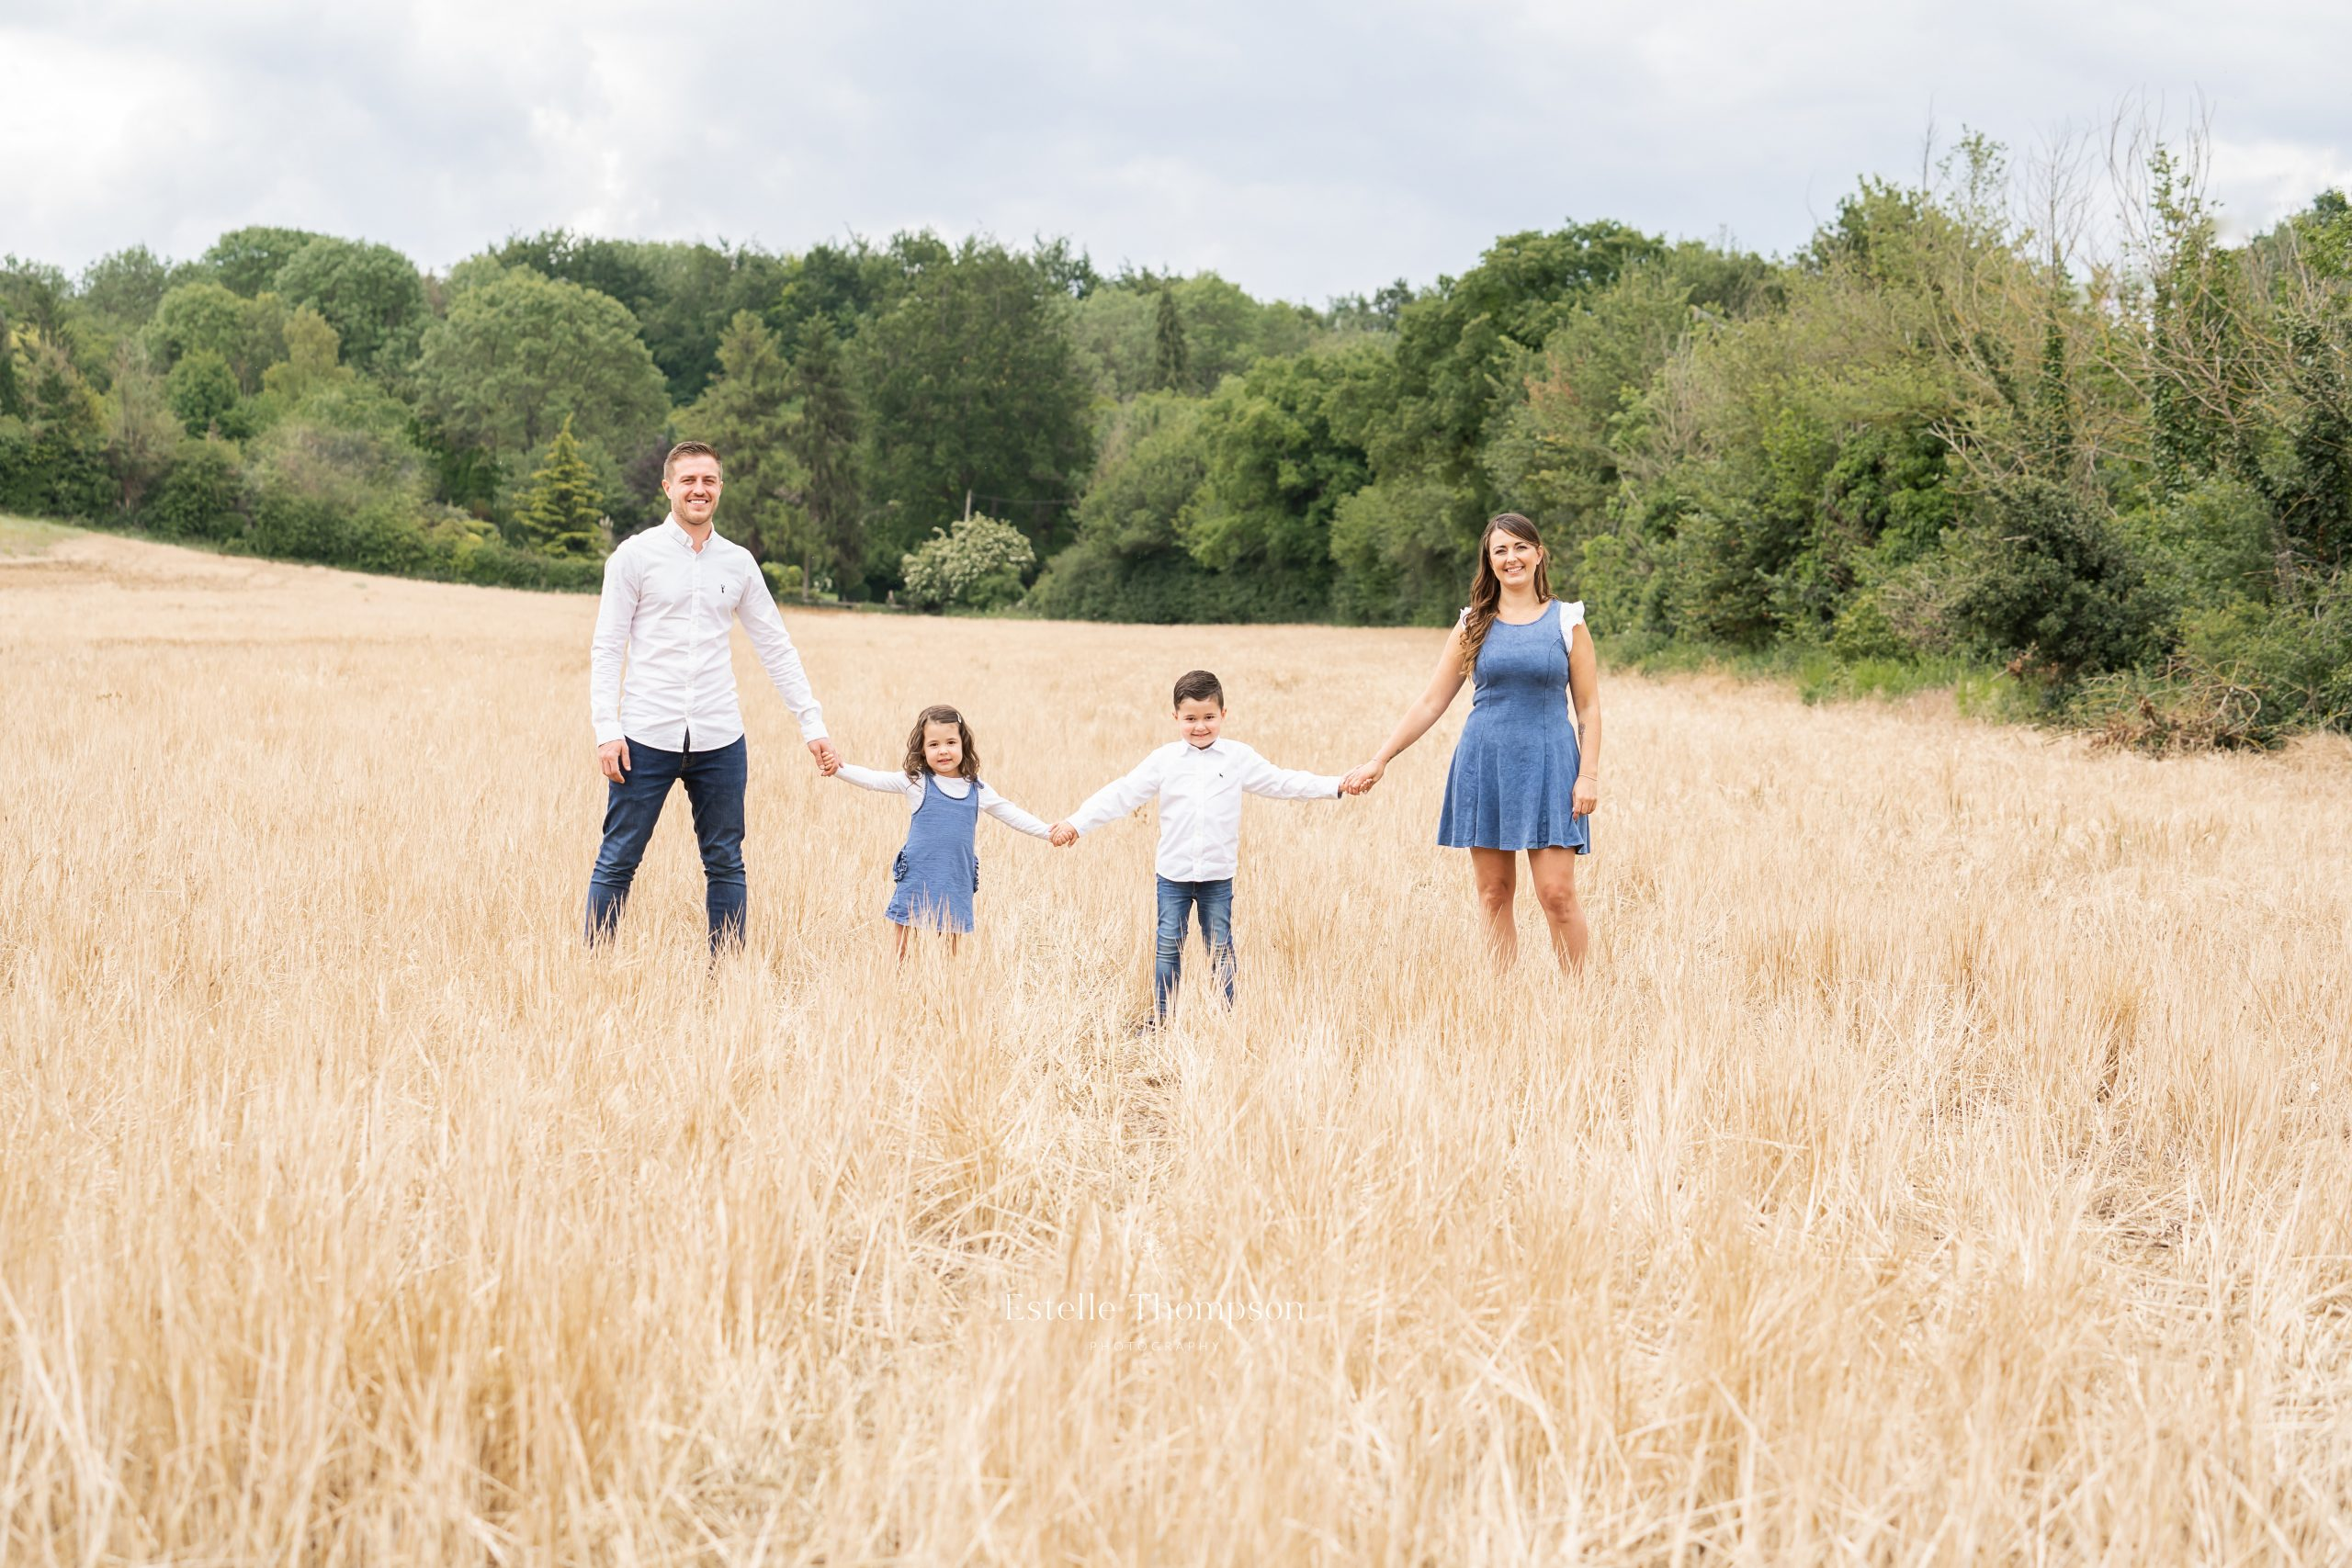 A family of mum dad daughter and son stand in front of a gate in the countryside for a Kent family photoshoot